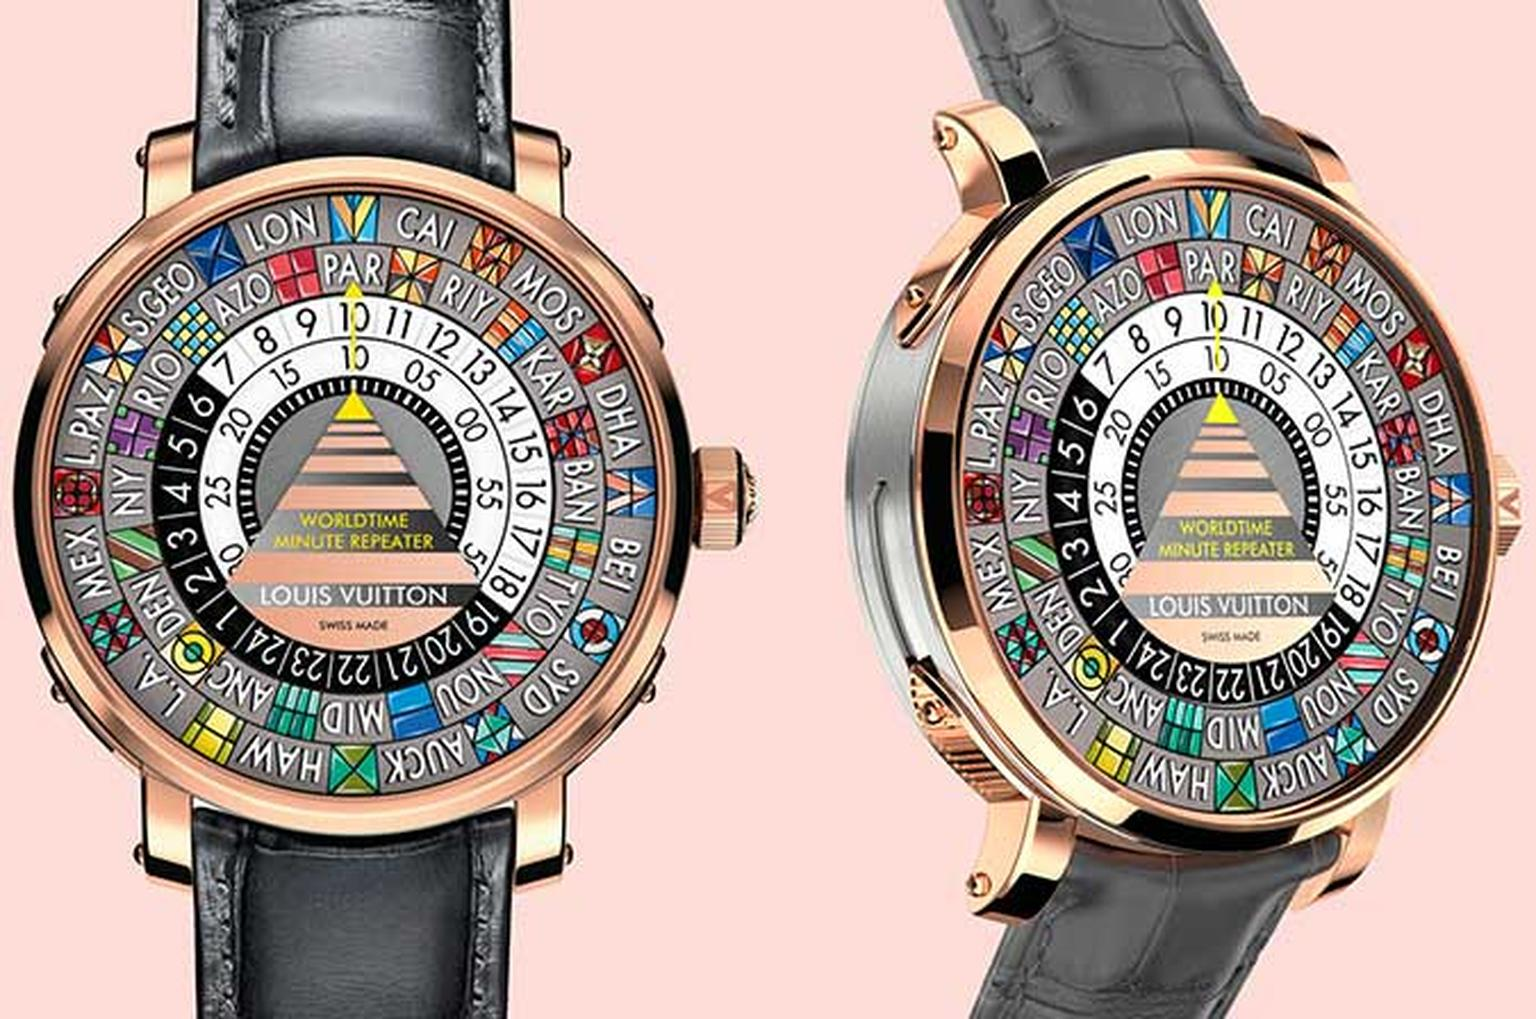 Louis -Vuitton -Worldtime -Minute -Repeater -watch